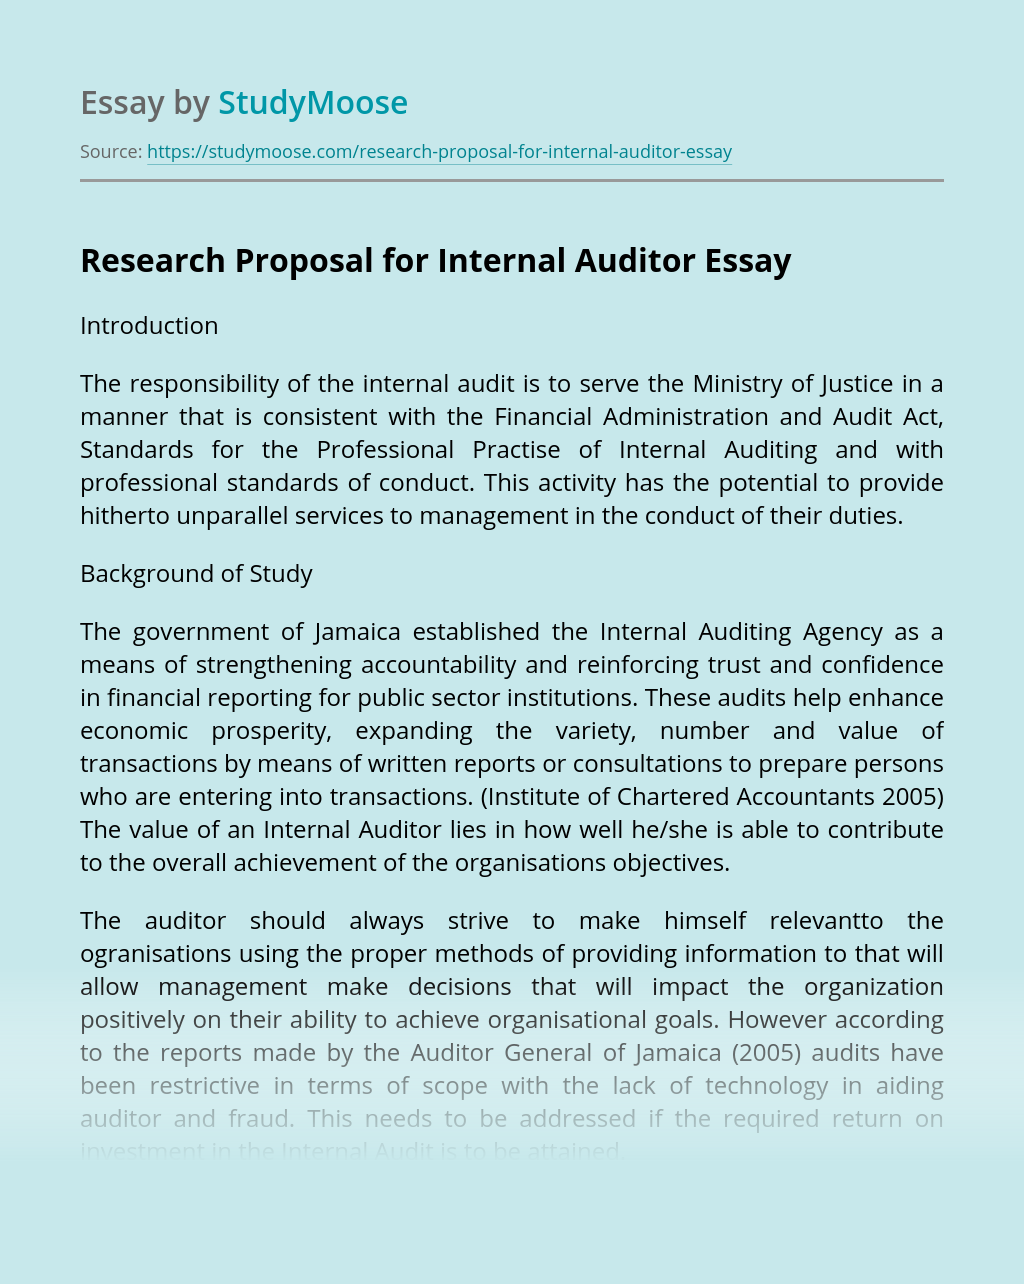 Research Proposal for Internal Auditor